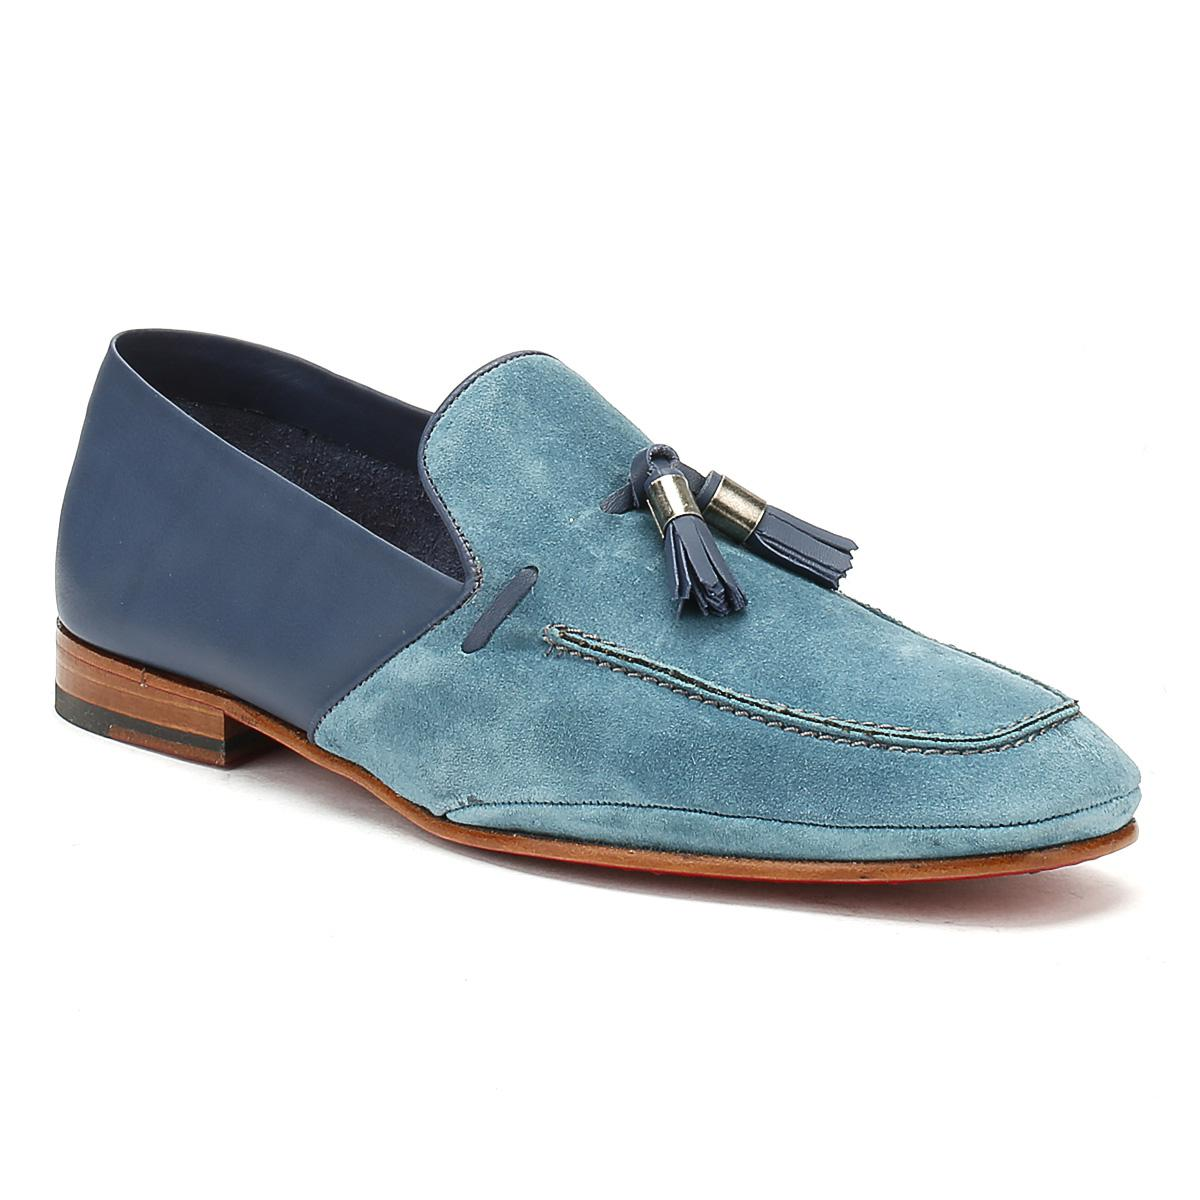 Mens Croste Bovino Seta Blue Martini Mule Loafer